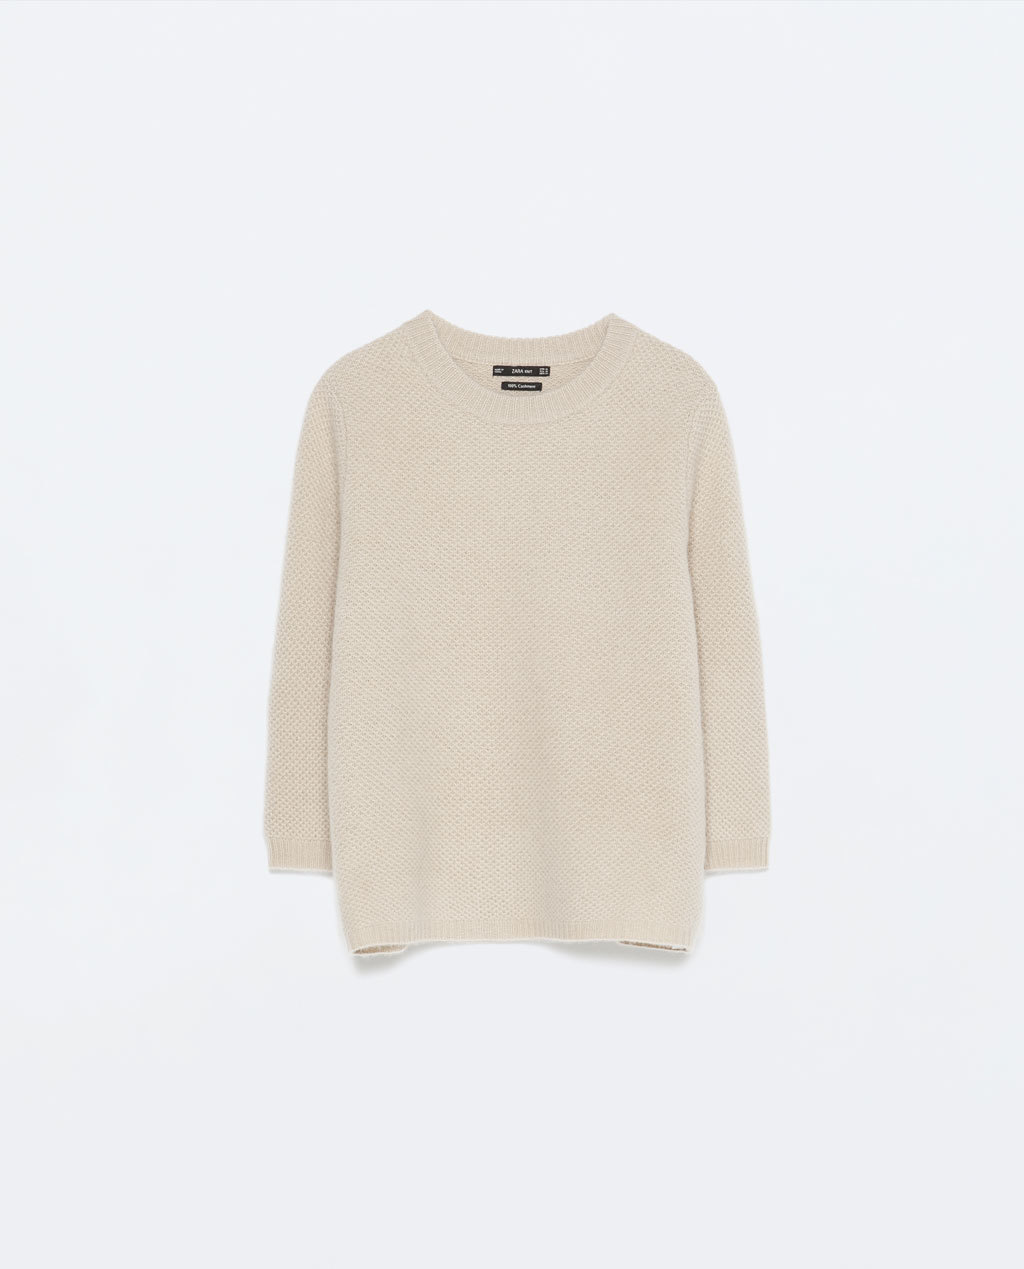 Cashmere Jumper - pattern: plain; style: standard; predominant colour: stone; occasions: casual, creative work; length: standard; fit: standard fit; neckline: crew; fibres: cashmere - 100%; sleeve length: long sleeve; sleeve style: standard; texture group: knits/crochet; pattern type: knitted - other; season: s/s 2015; wardrobe: investment